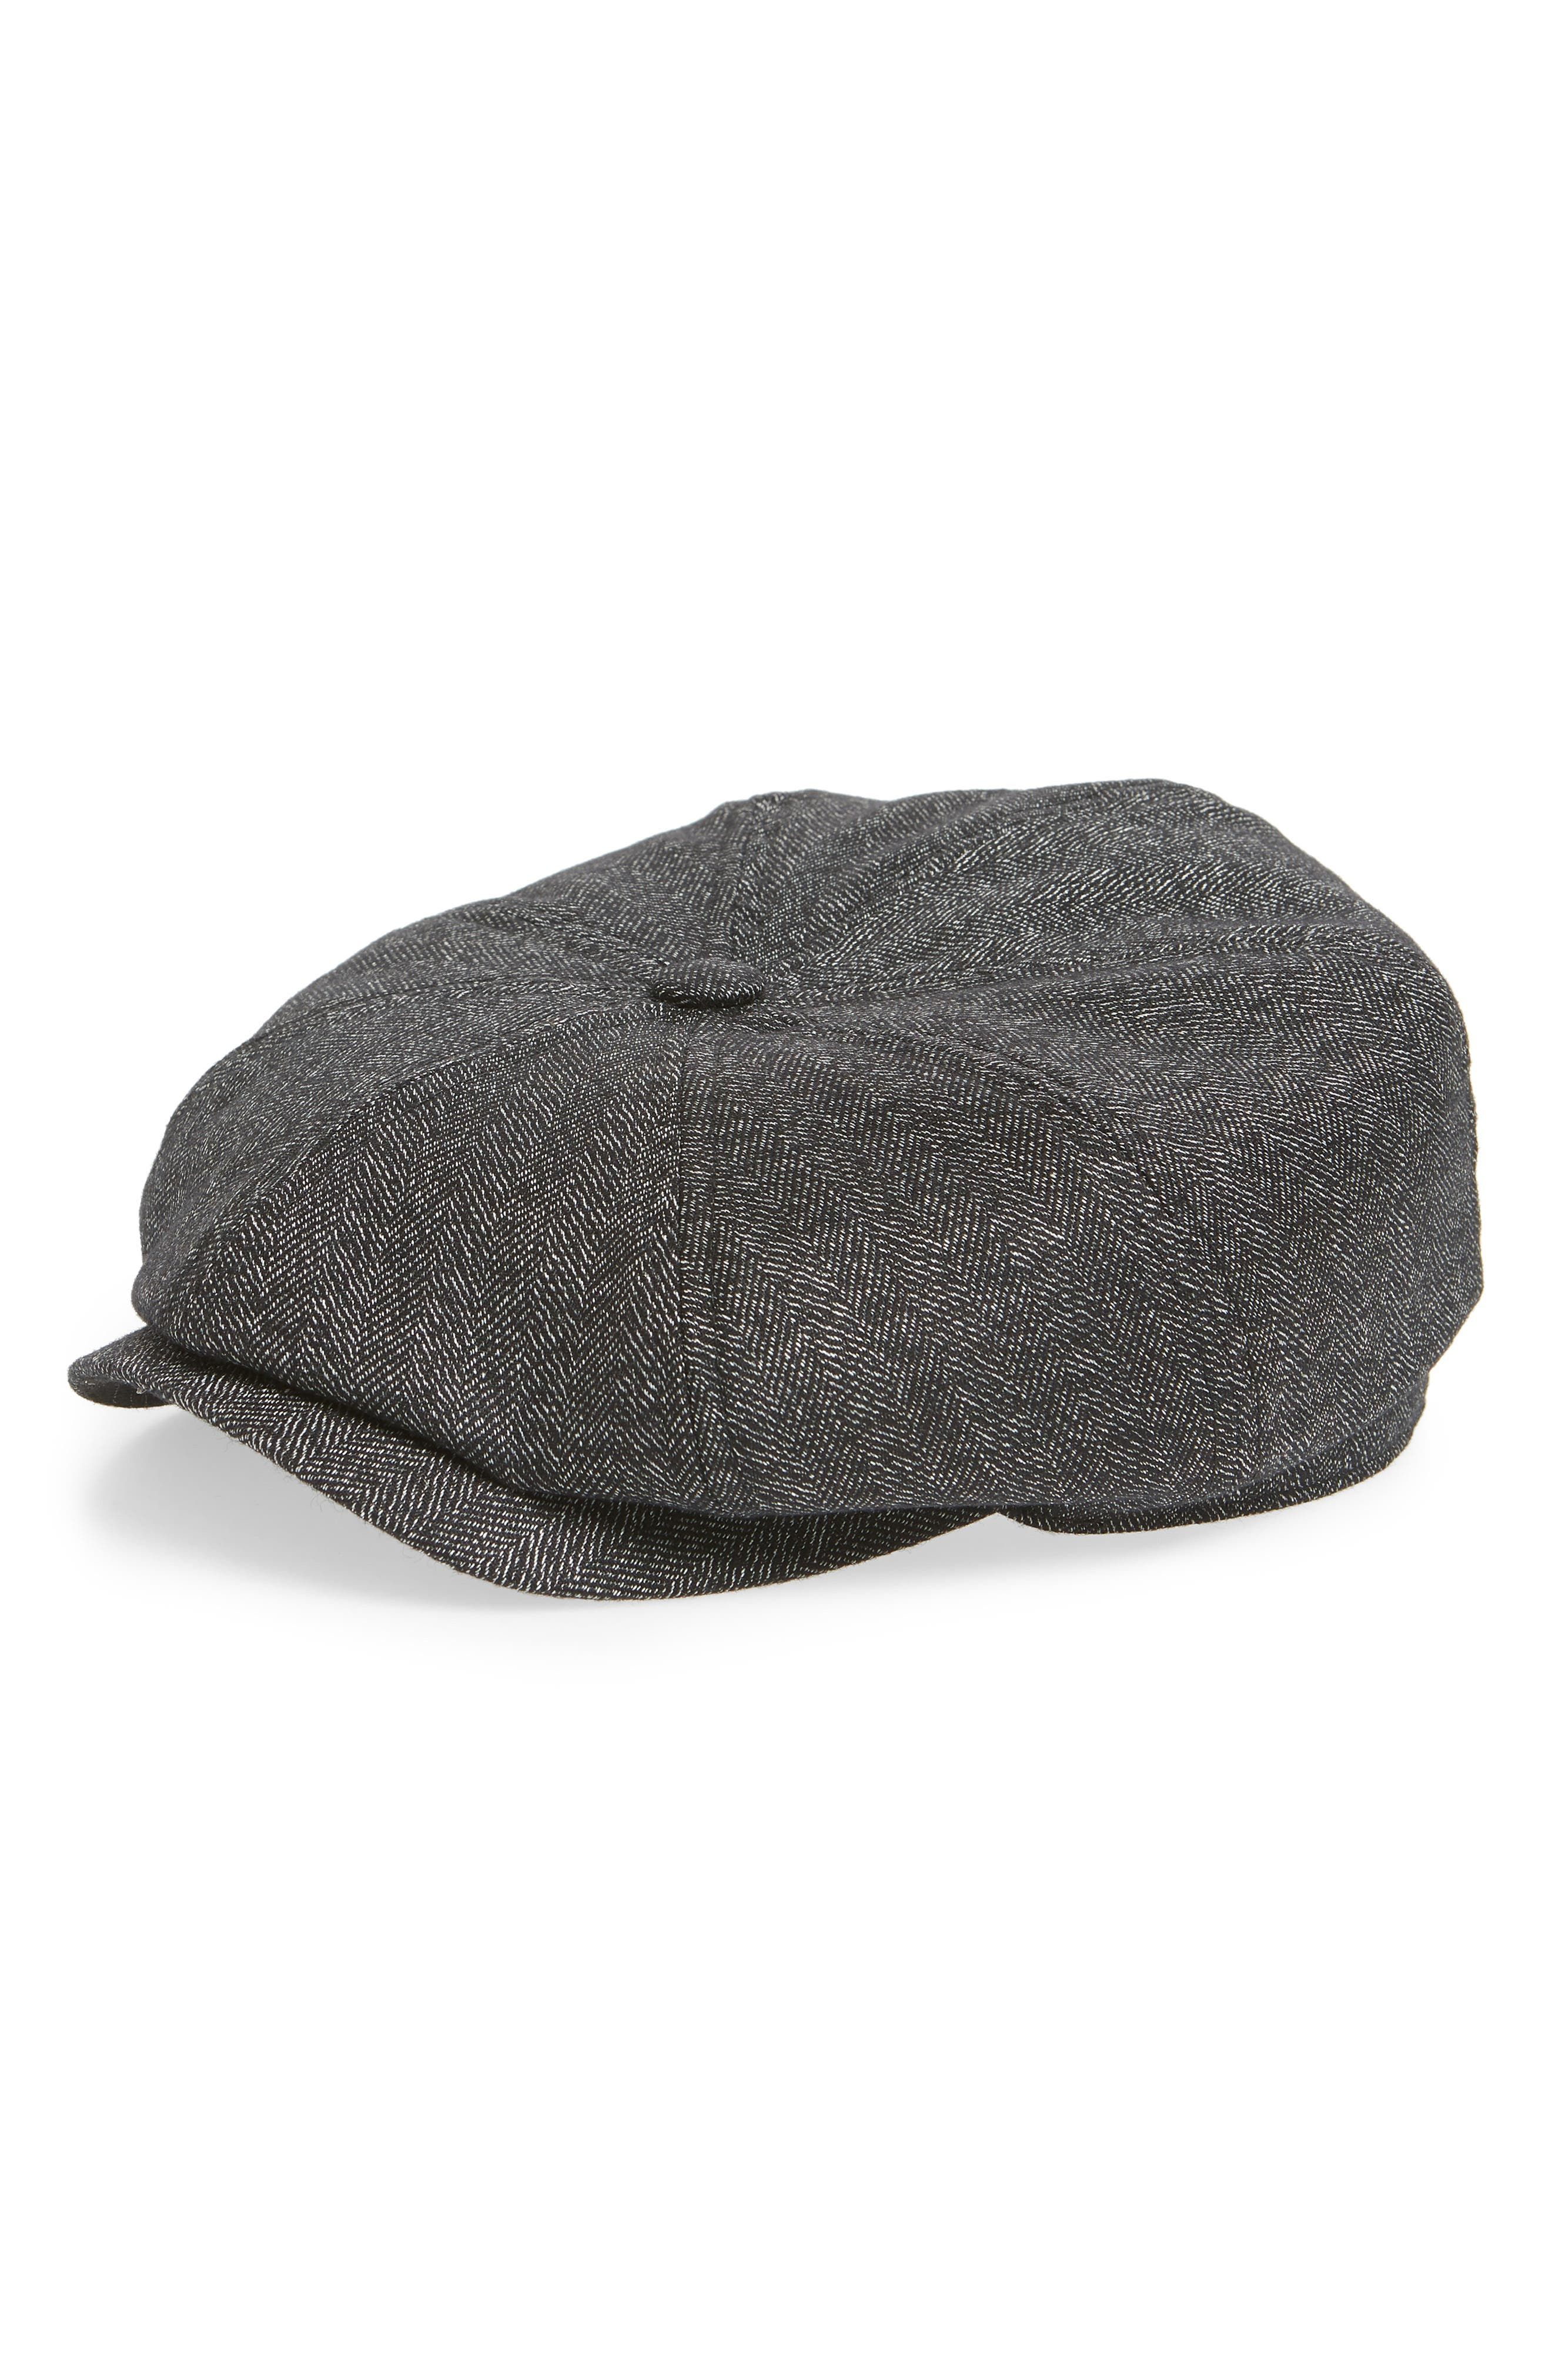 a3036036 1930s Style Mens Hats and Caps Mens Ted Baker London Herringbone Baker Boy  Hat - $79.00